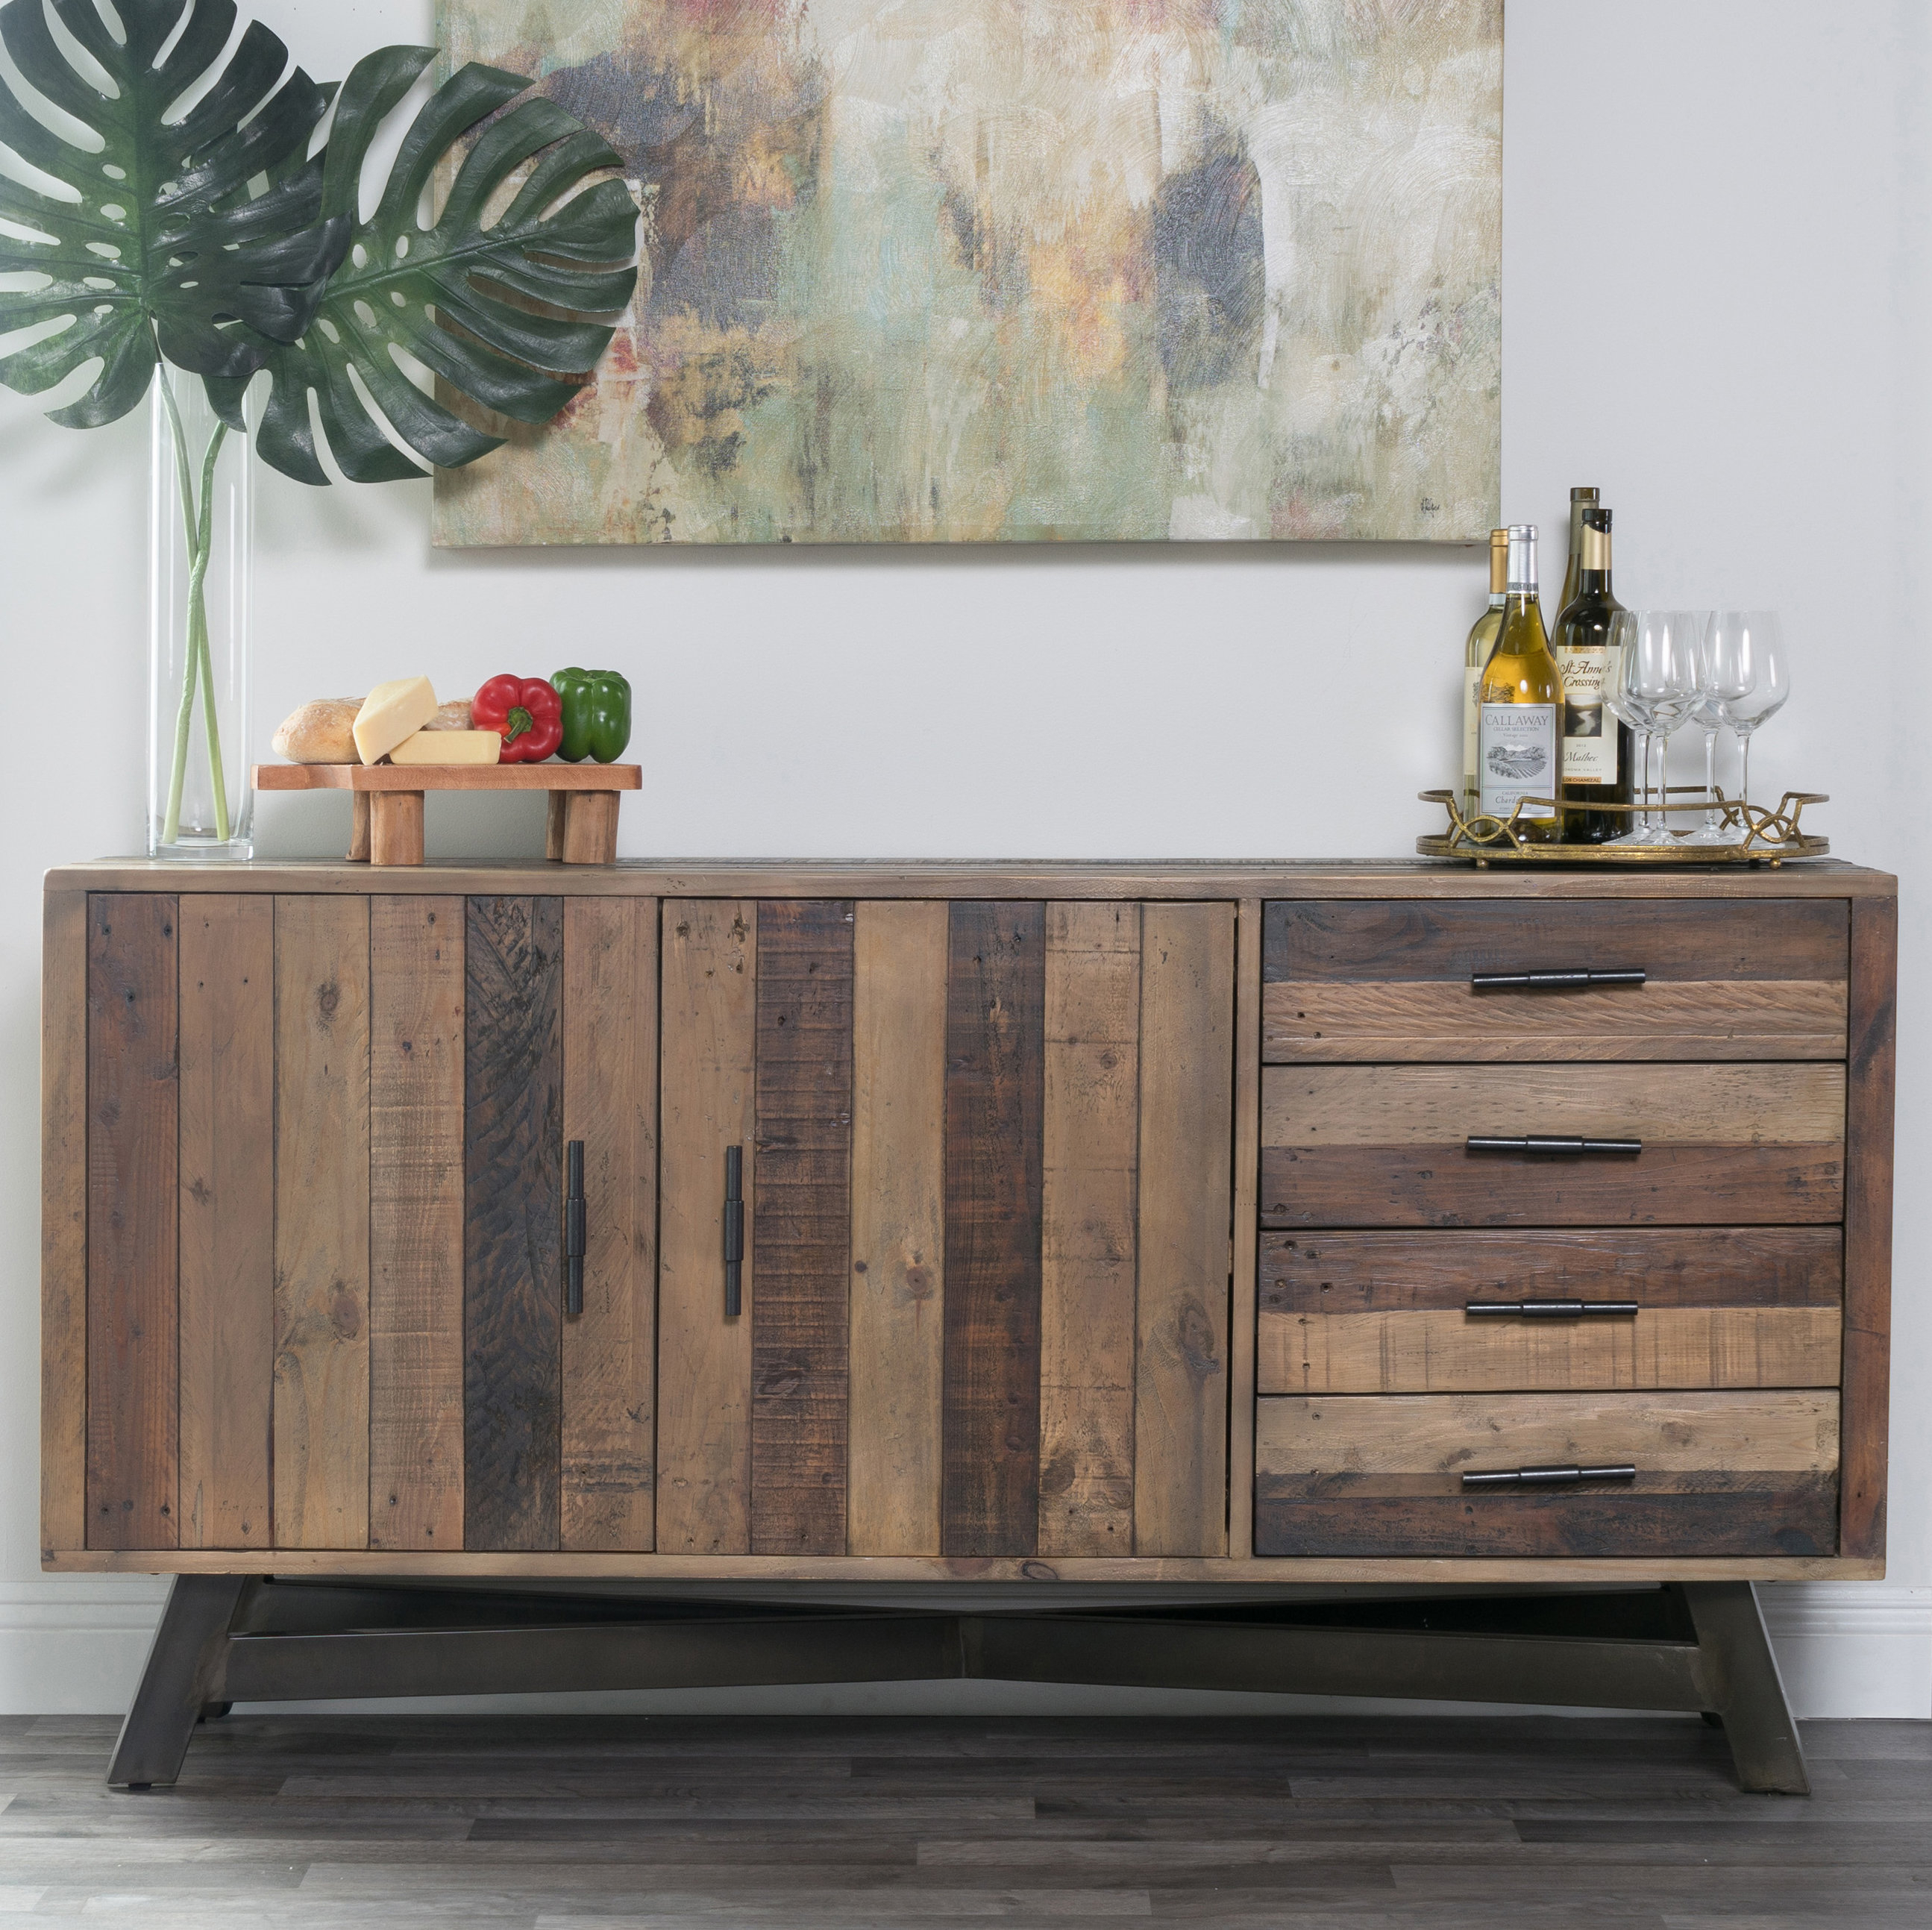 Cabinet Equipped Reclaimed Wood Sideboards & Buffets You'll inside Arminta Wood Sideboards (Image 5 of 30)